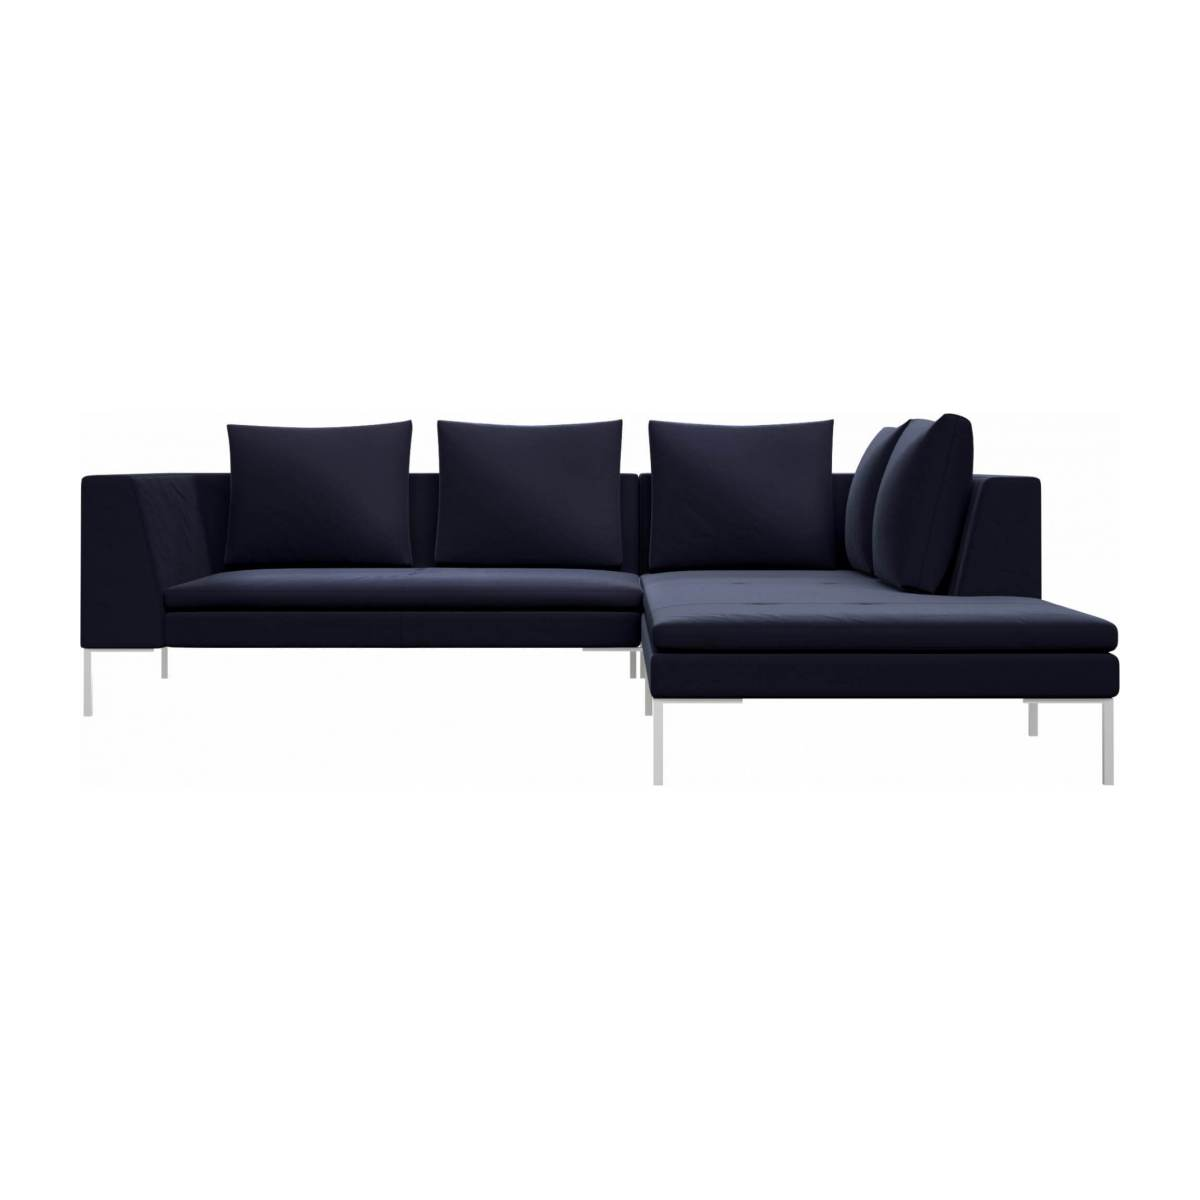 2 seater sofa with chaise longue on the right in Super Velvet fabric, dark blue  n°1